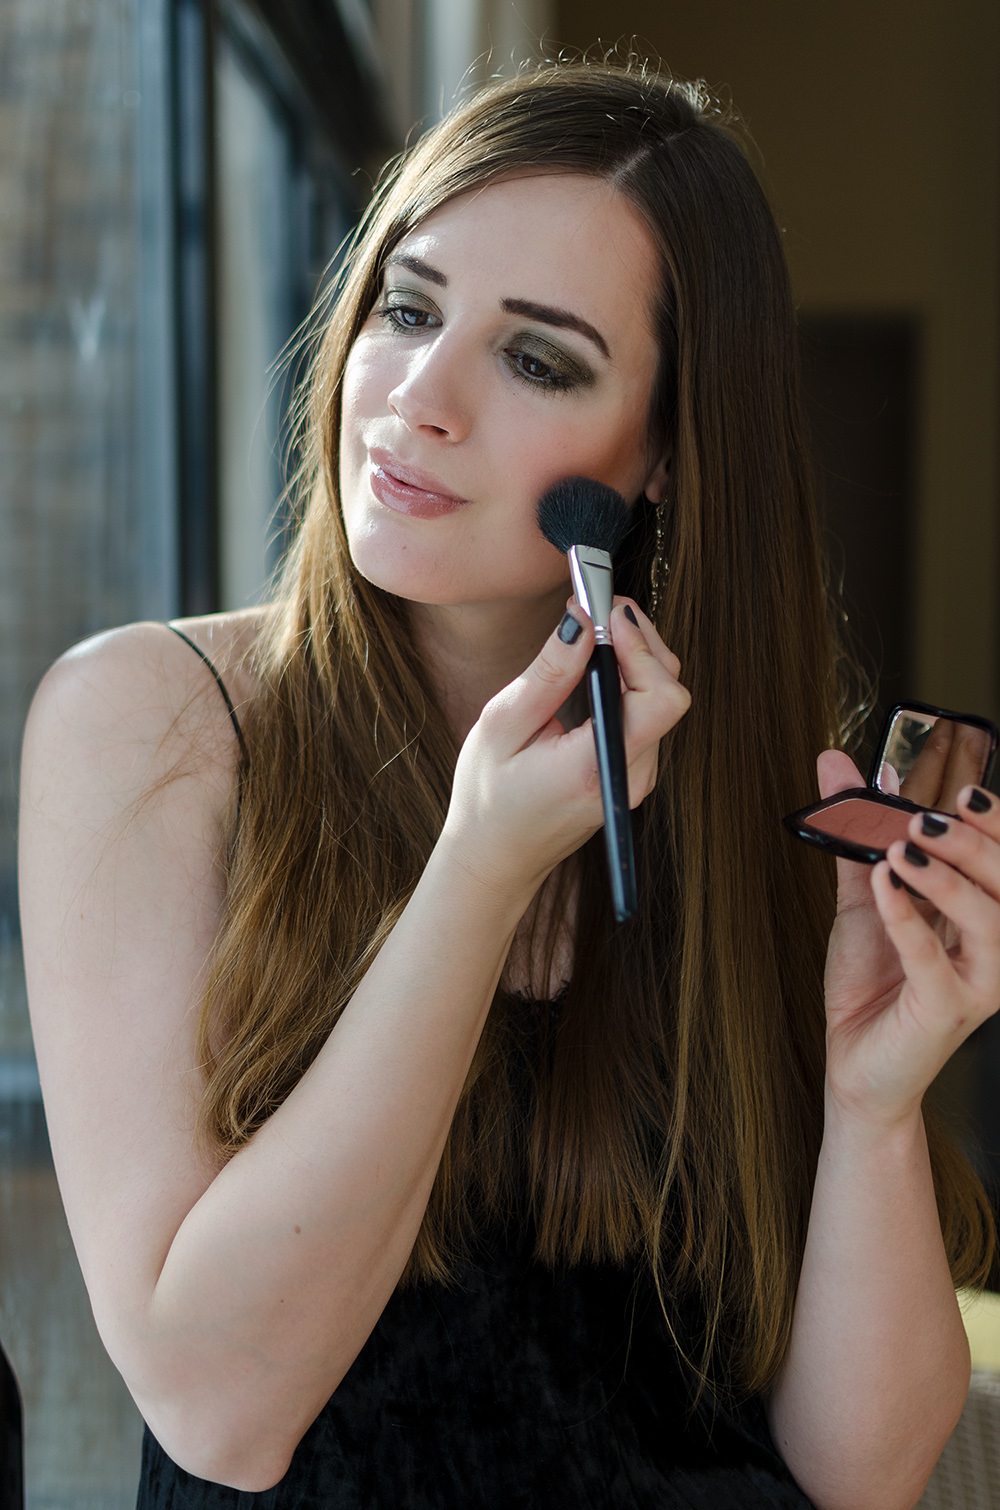 beautyblog-beautyblogger-draping-contouring-lov-cosmetics-andrea-funk-influencer-andysparkles-make-up